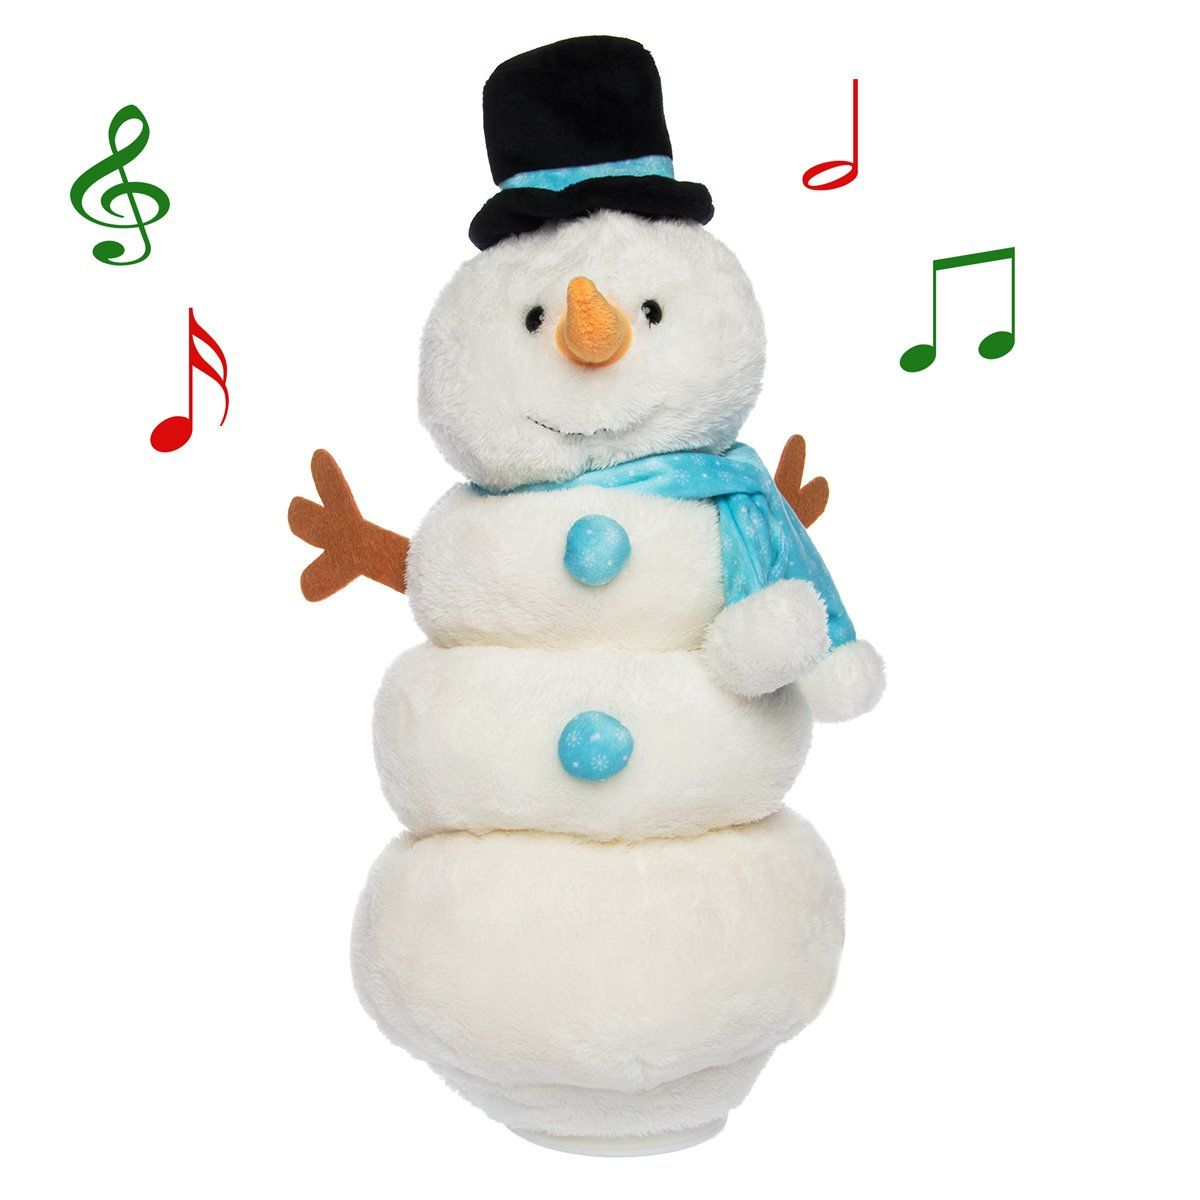 Simply Genius Singing Dancing Snowman Animated Plush Toy Doll